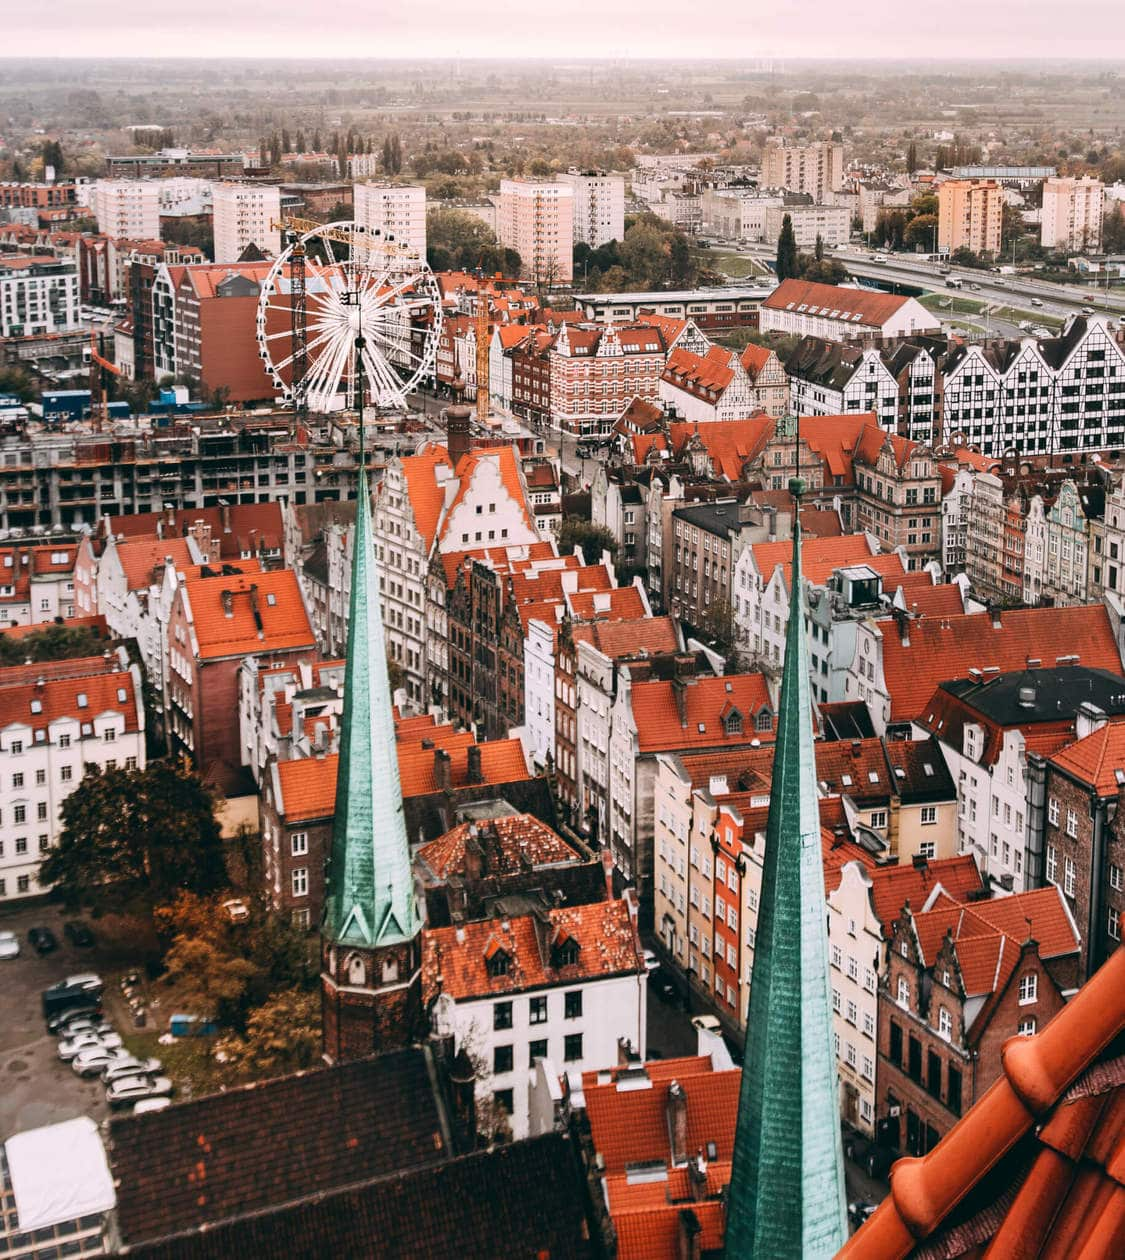 St Mary's Church // There is no shortage of picturesque views, cozy streets and Instagrammable photo spots in Gdansk, Poland. Click to discover my top 6 streets for photo inspiration in Old Town.